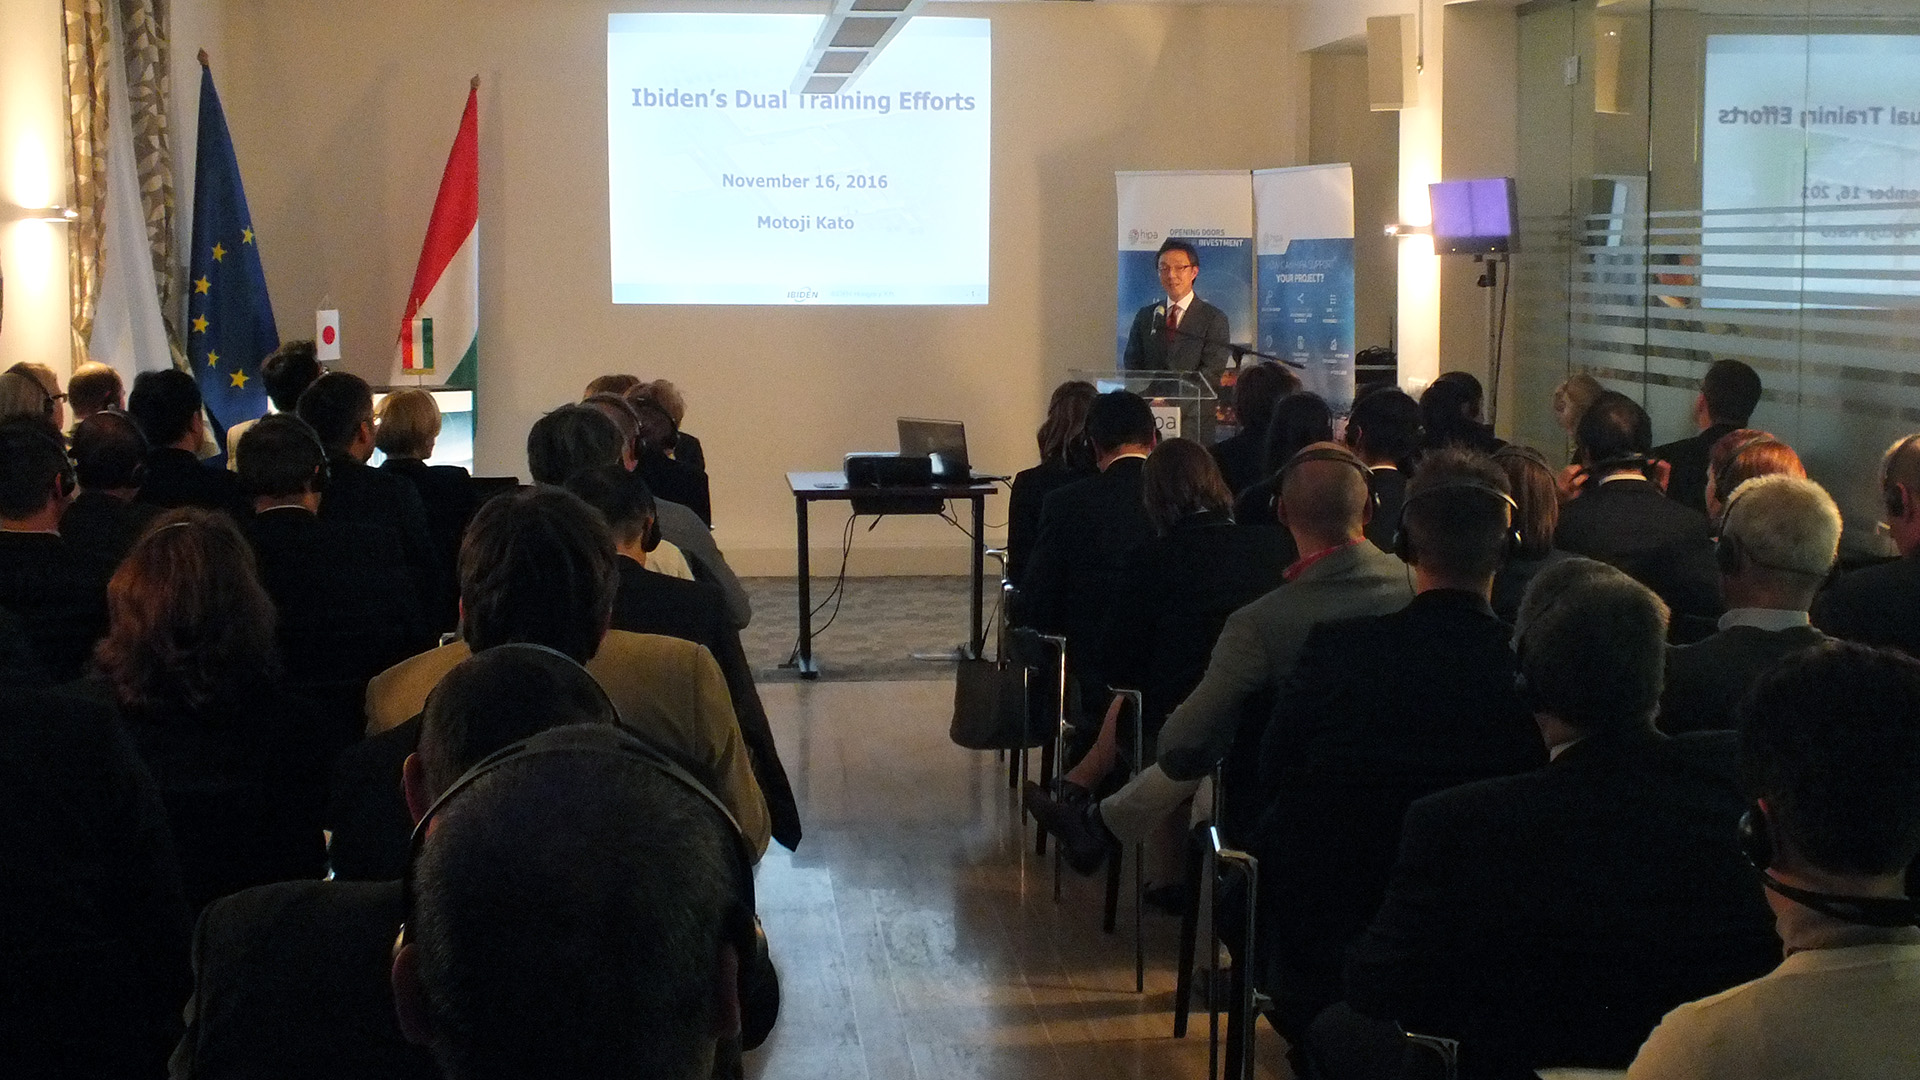 Seminar on the opportunities in the Hungarian dual training system